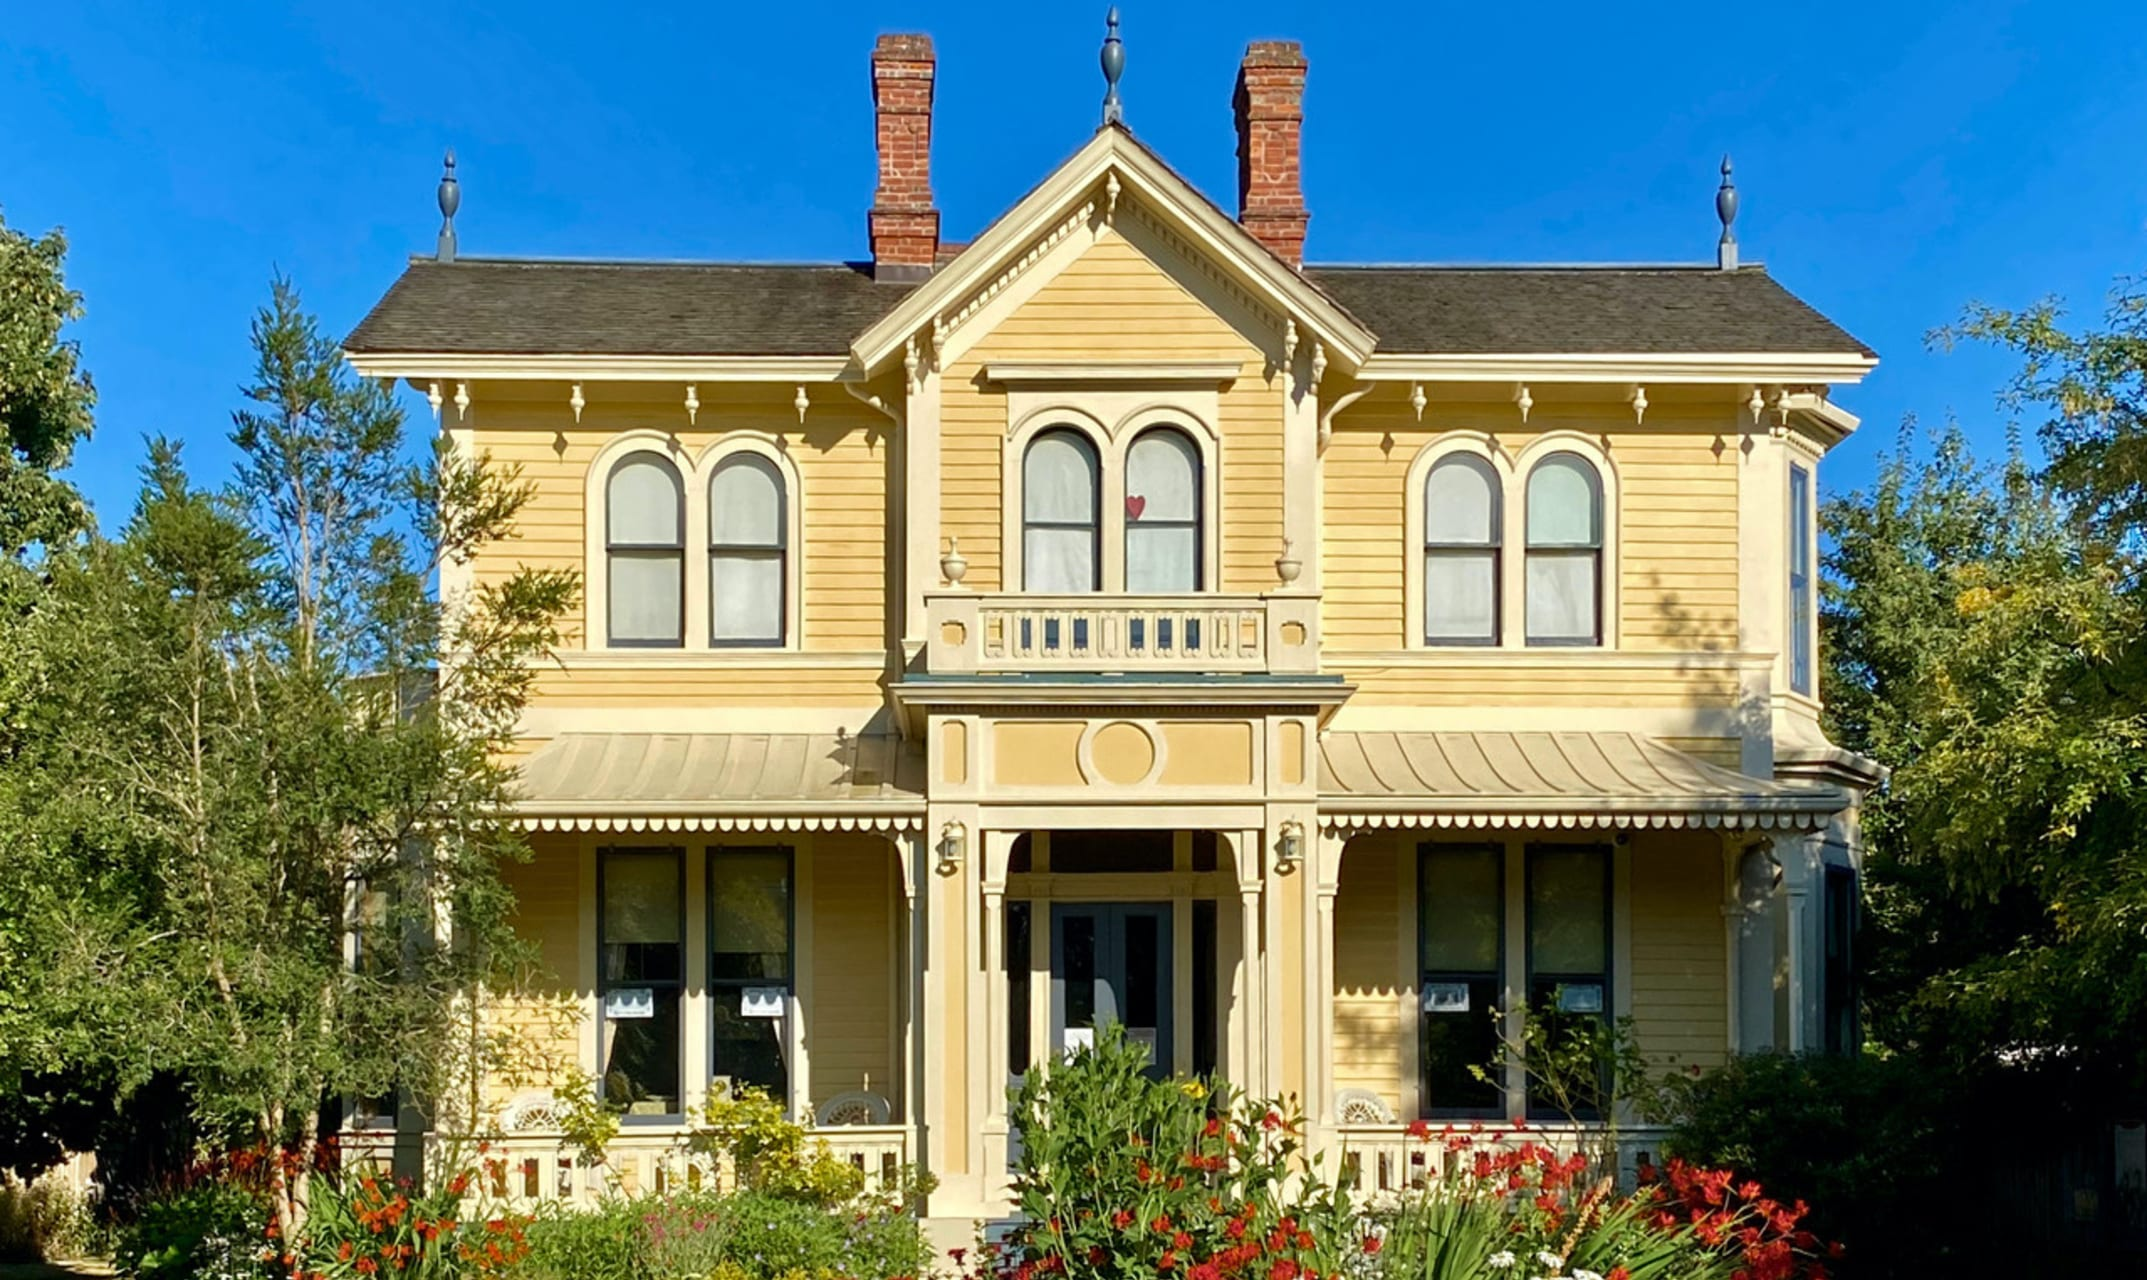 Victoria, BC - Artist Emily Carr's Home and the James Bay Community